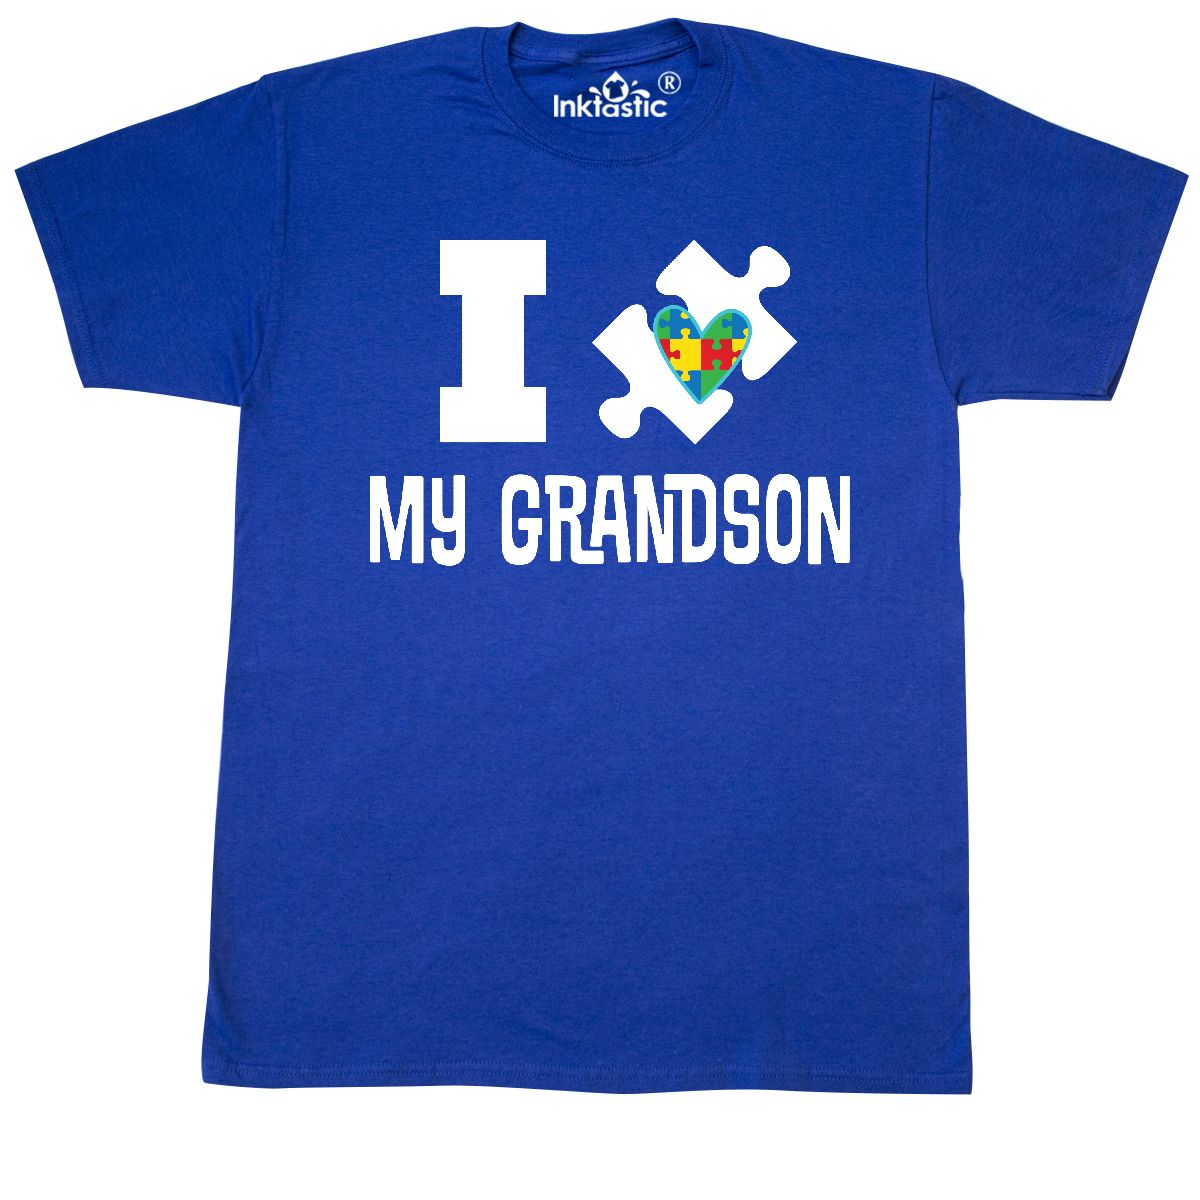 Inktastic Autism Support I Love My Grandson T-Shirt Awareness Disorder Spectrum by Inktastic